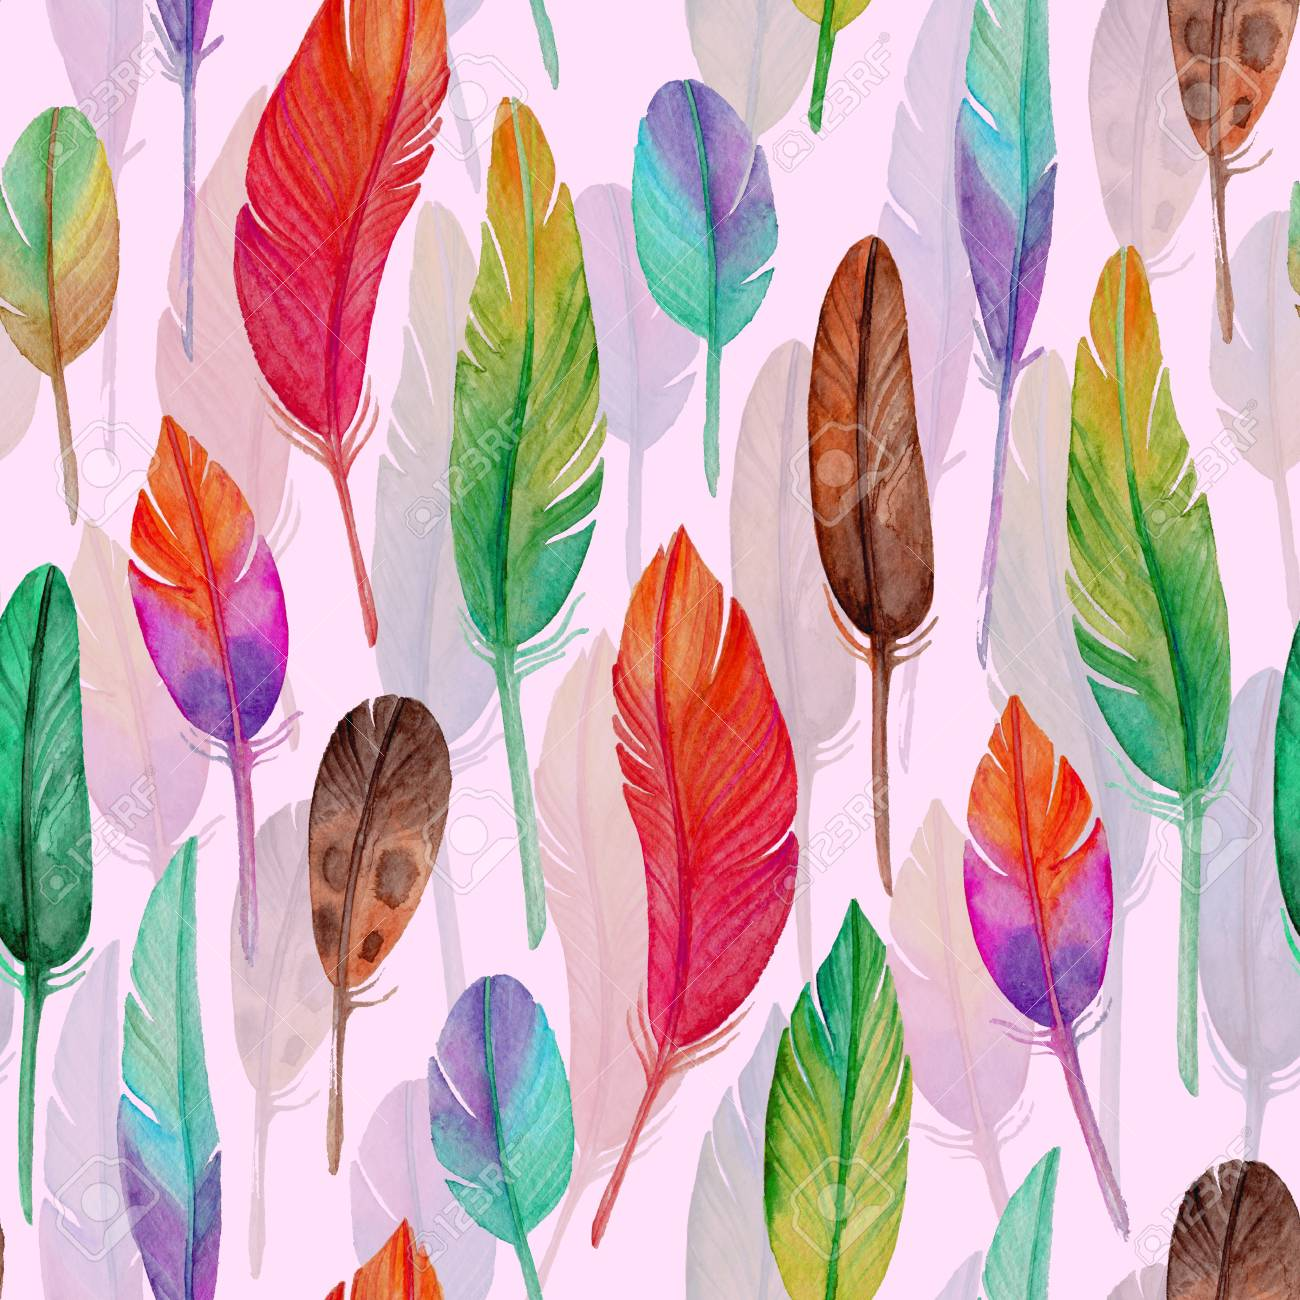 Watercolor Seamless Pattern With Feathers Boho Style For Wallpaper Fabric Wrapping